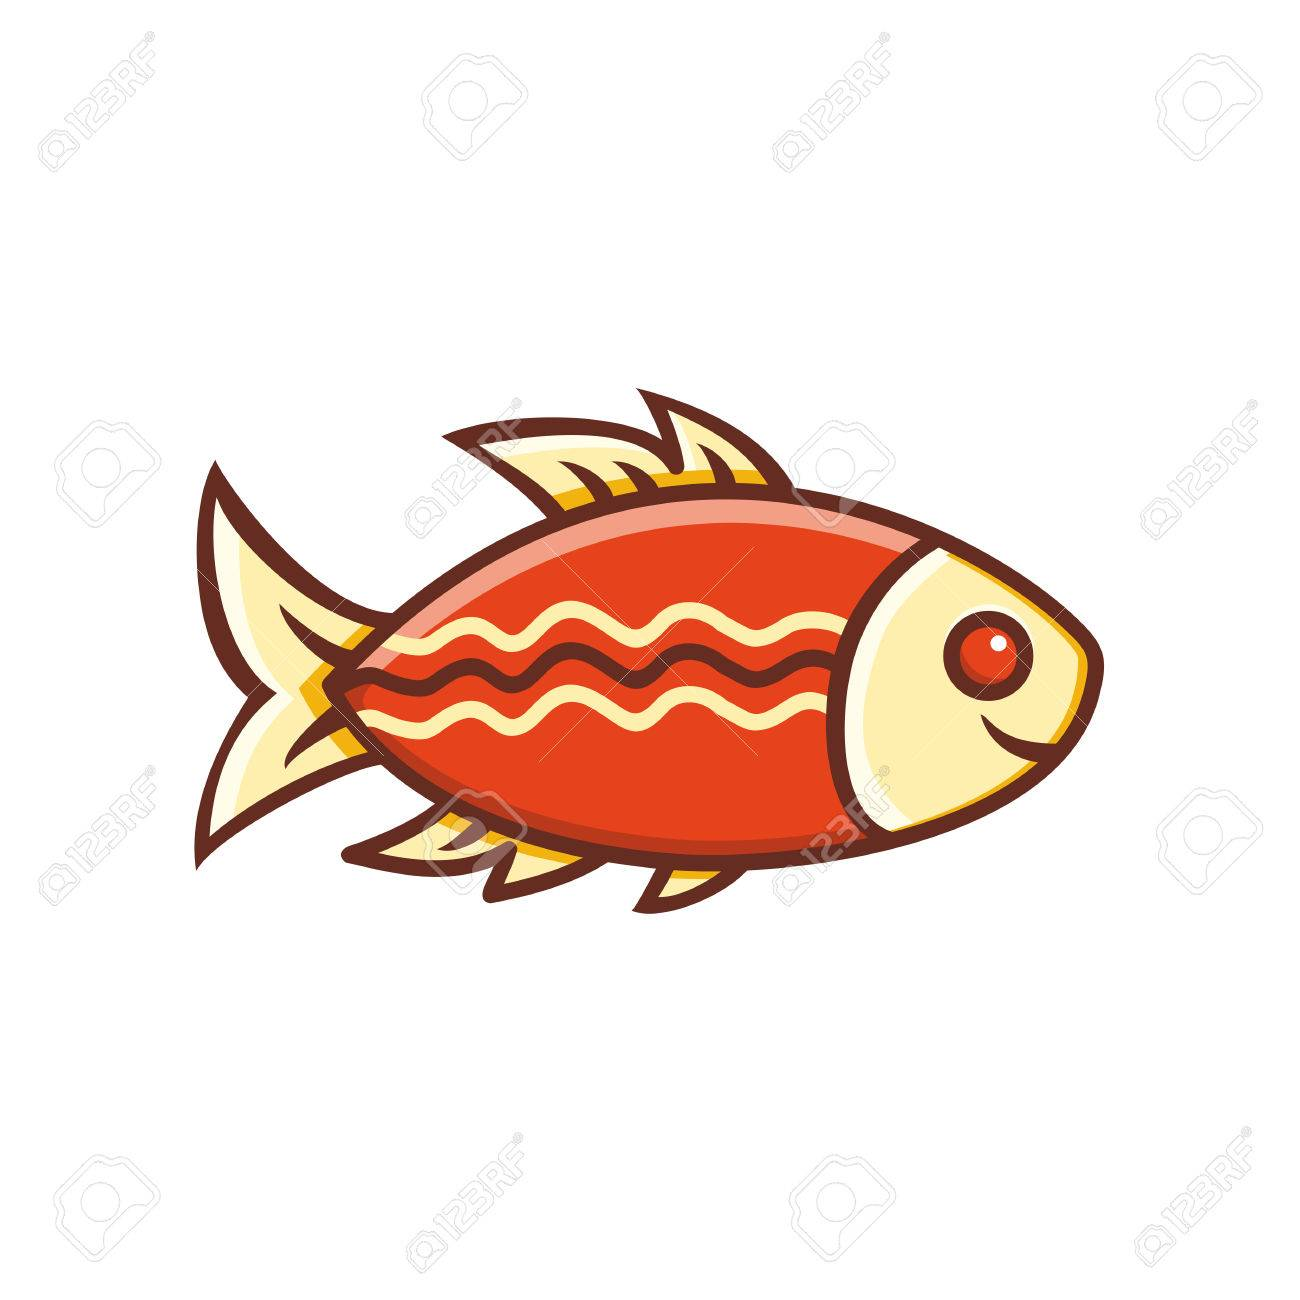 Fish. Fish Icon. Colored Drawing. Royalty Free Cliparts, Vectors ...